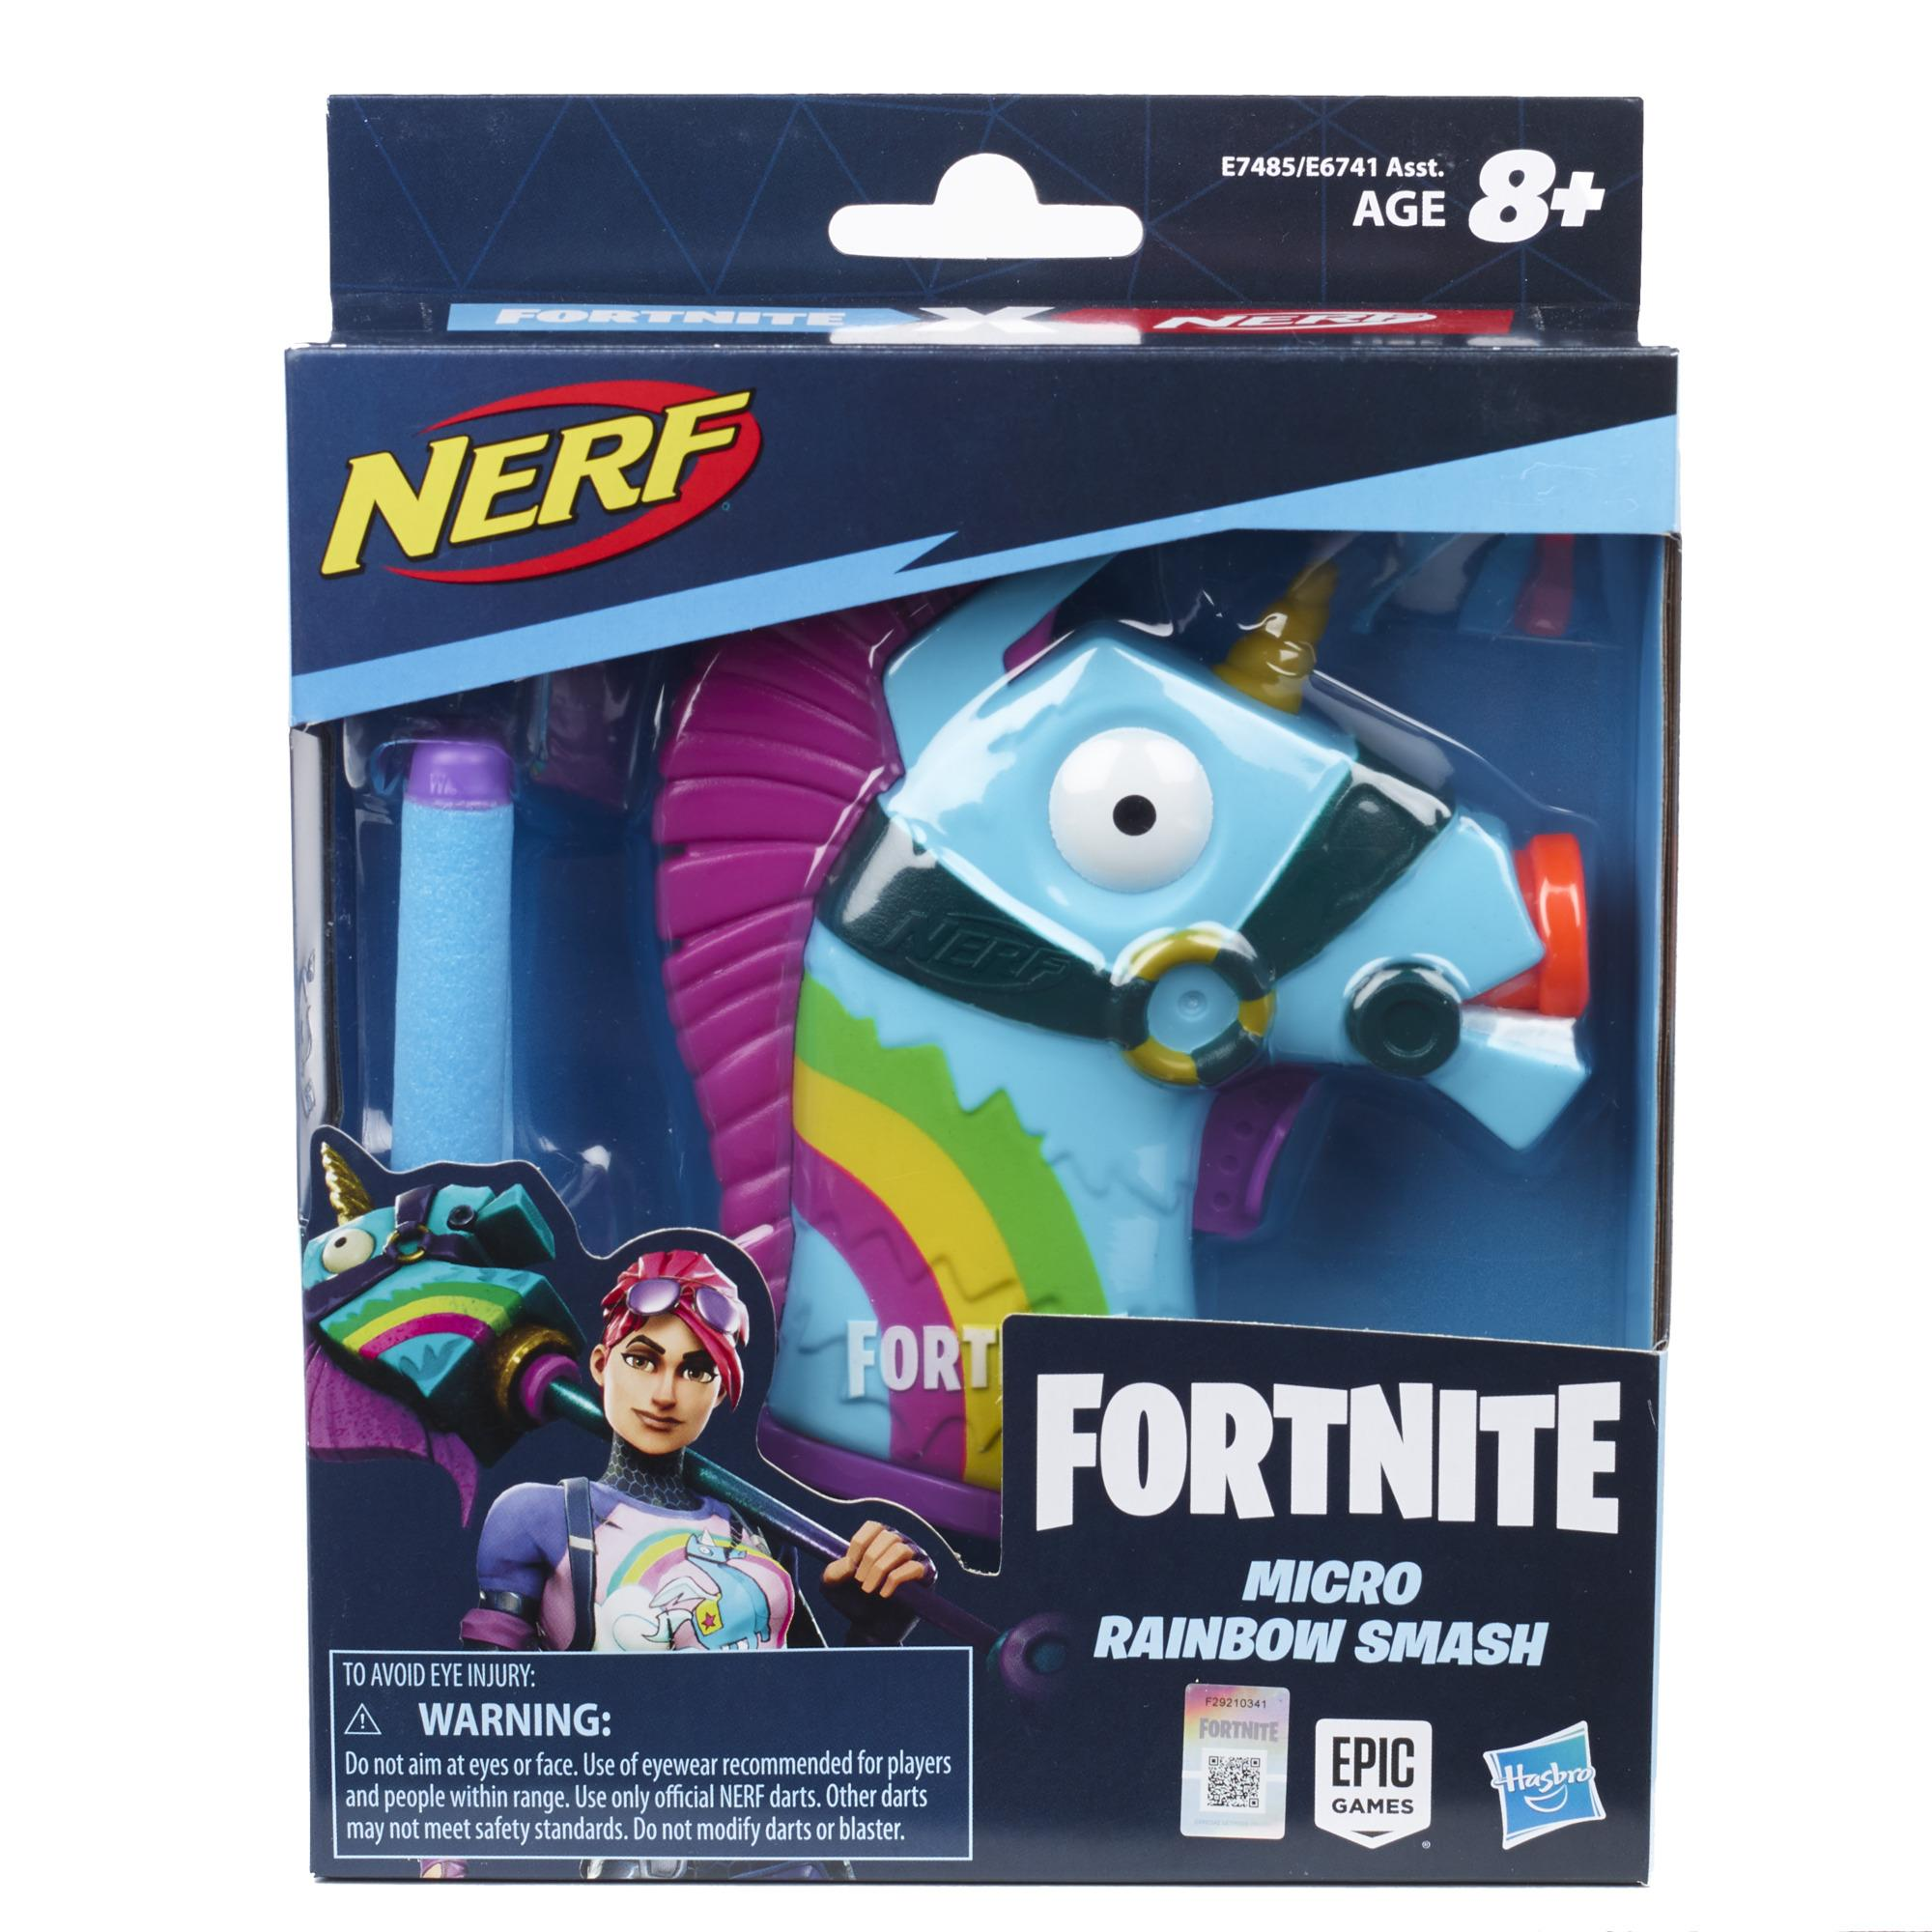 Nerf MicroShots Fortnite Rainbow Smash Blaster